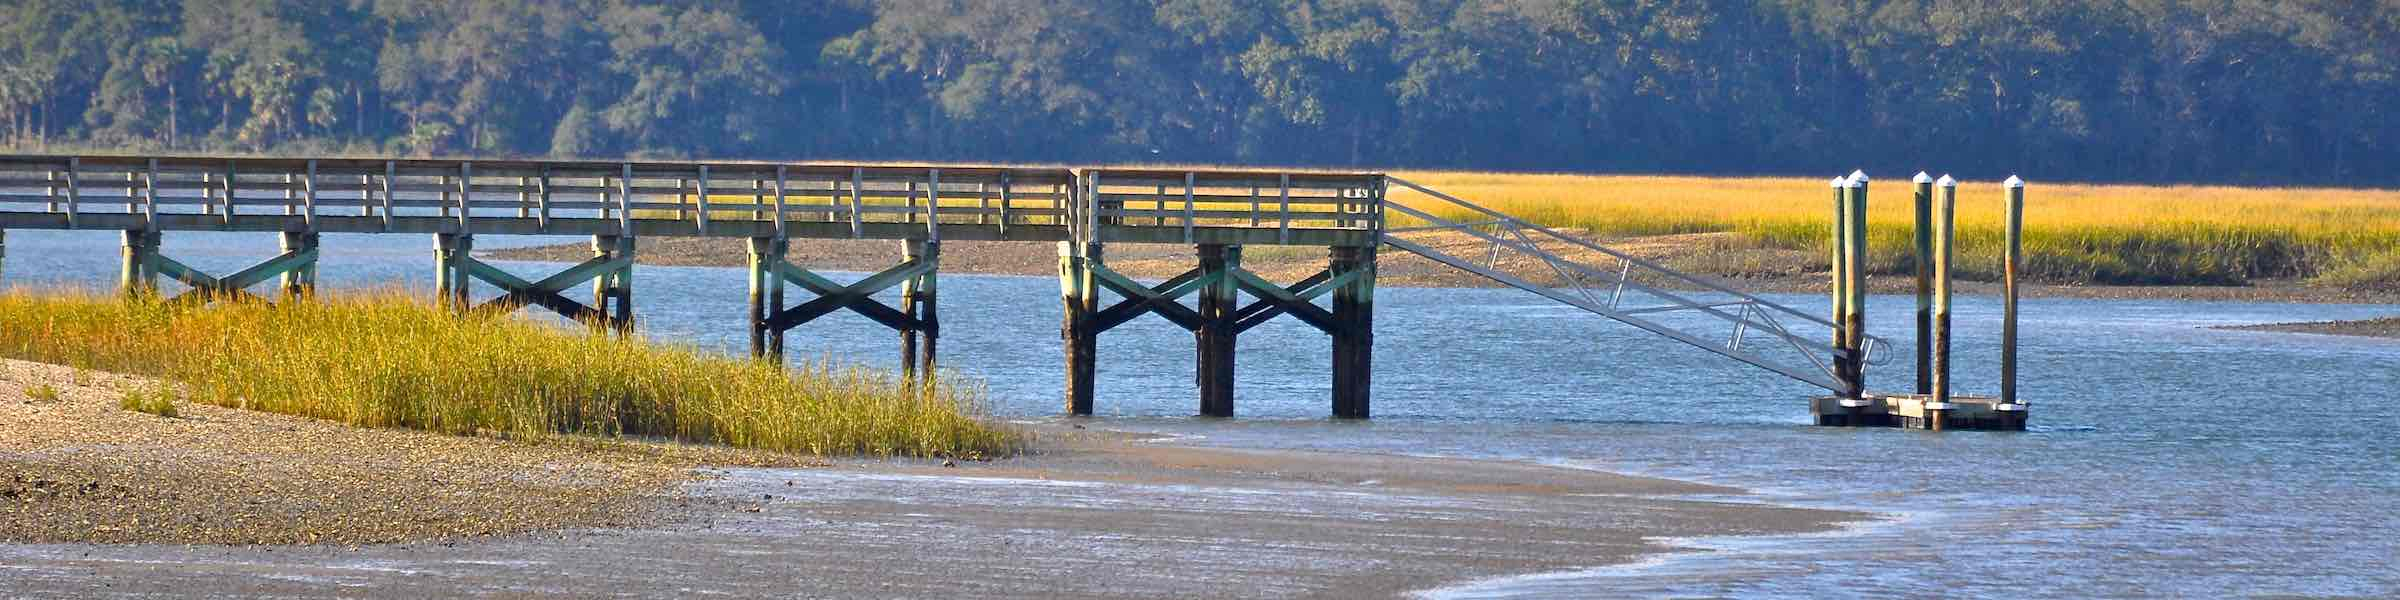 Things To Do In Hilton Head Sc In March 2021 Pertaining To Calendar 2021 For Hilton Head Sc